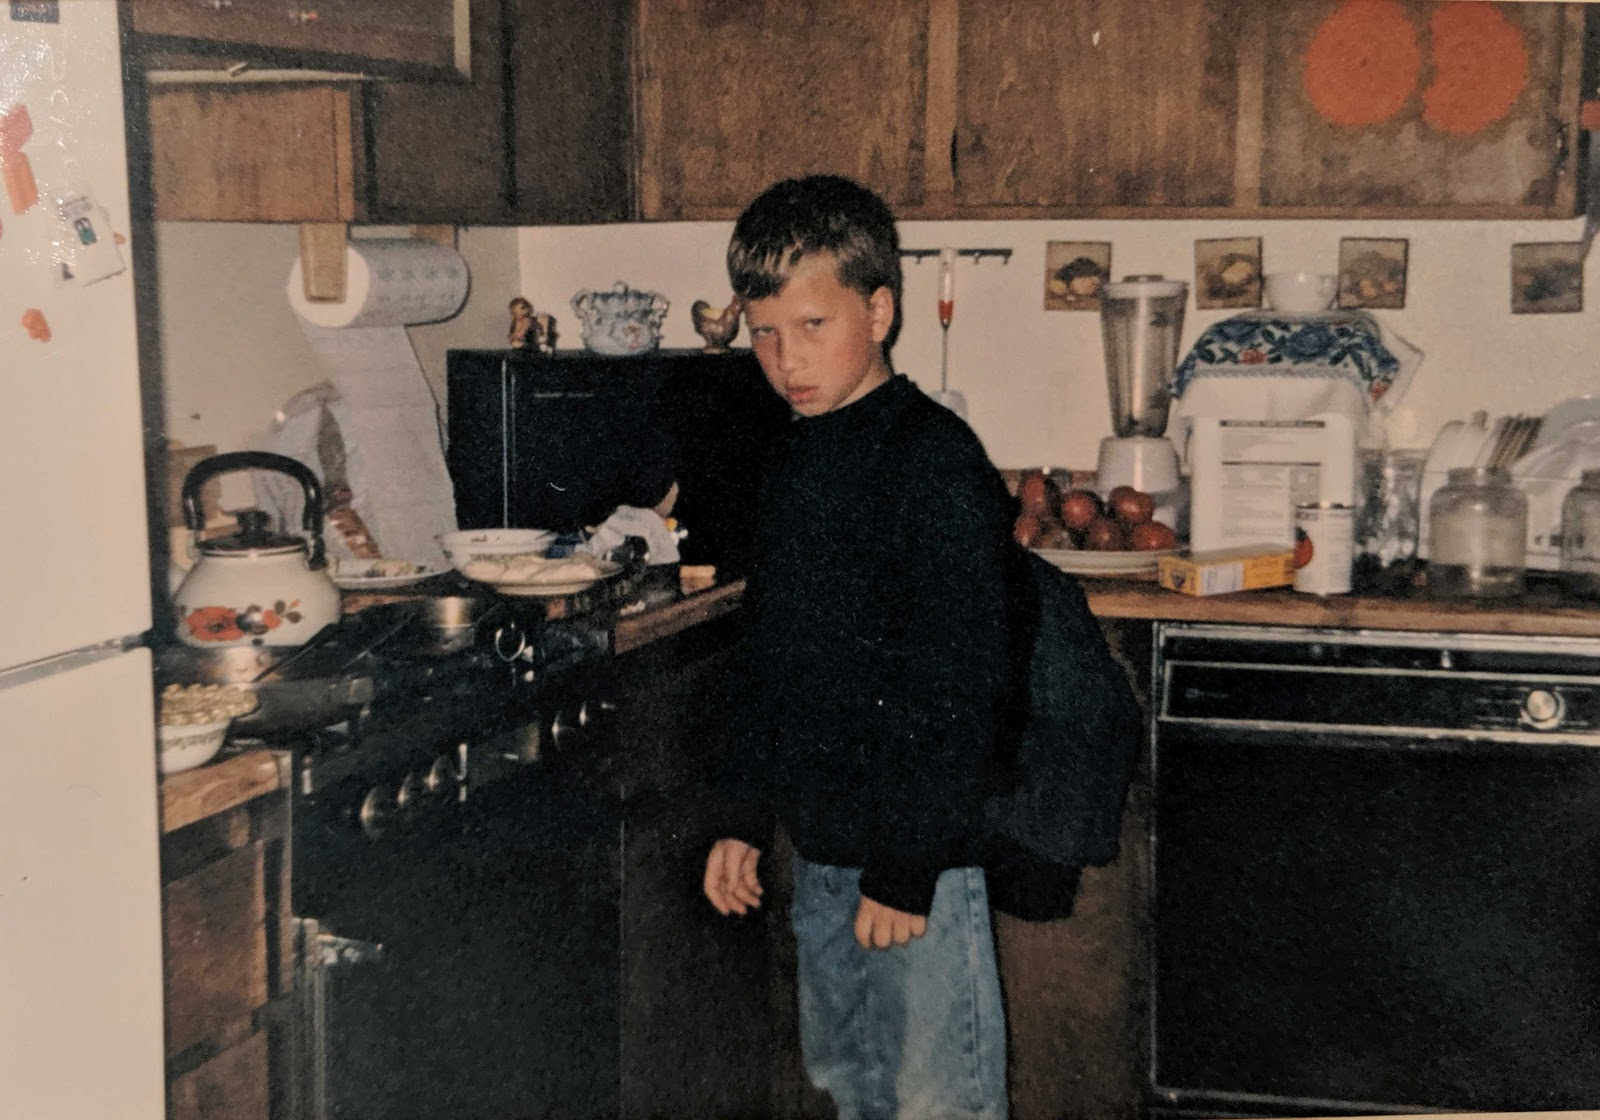 A young Vlad Magdalin stands in a kitchen with a scowl on his face.